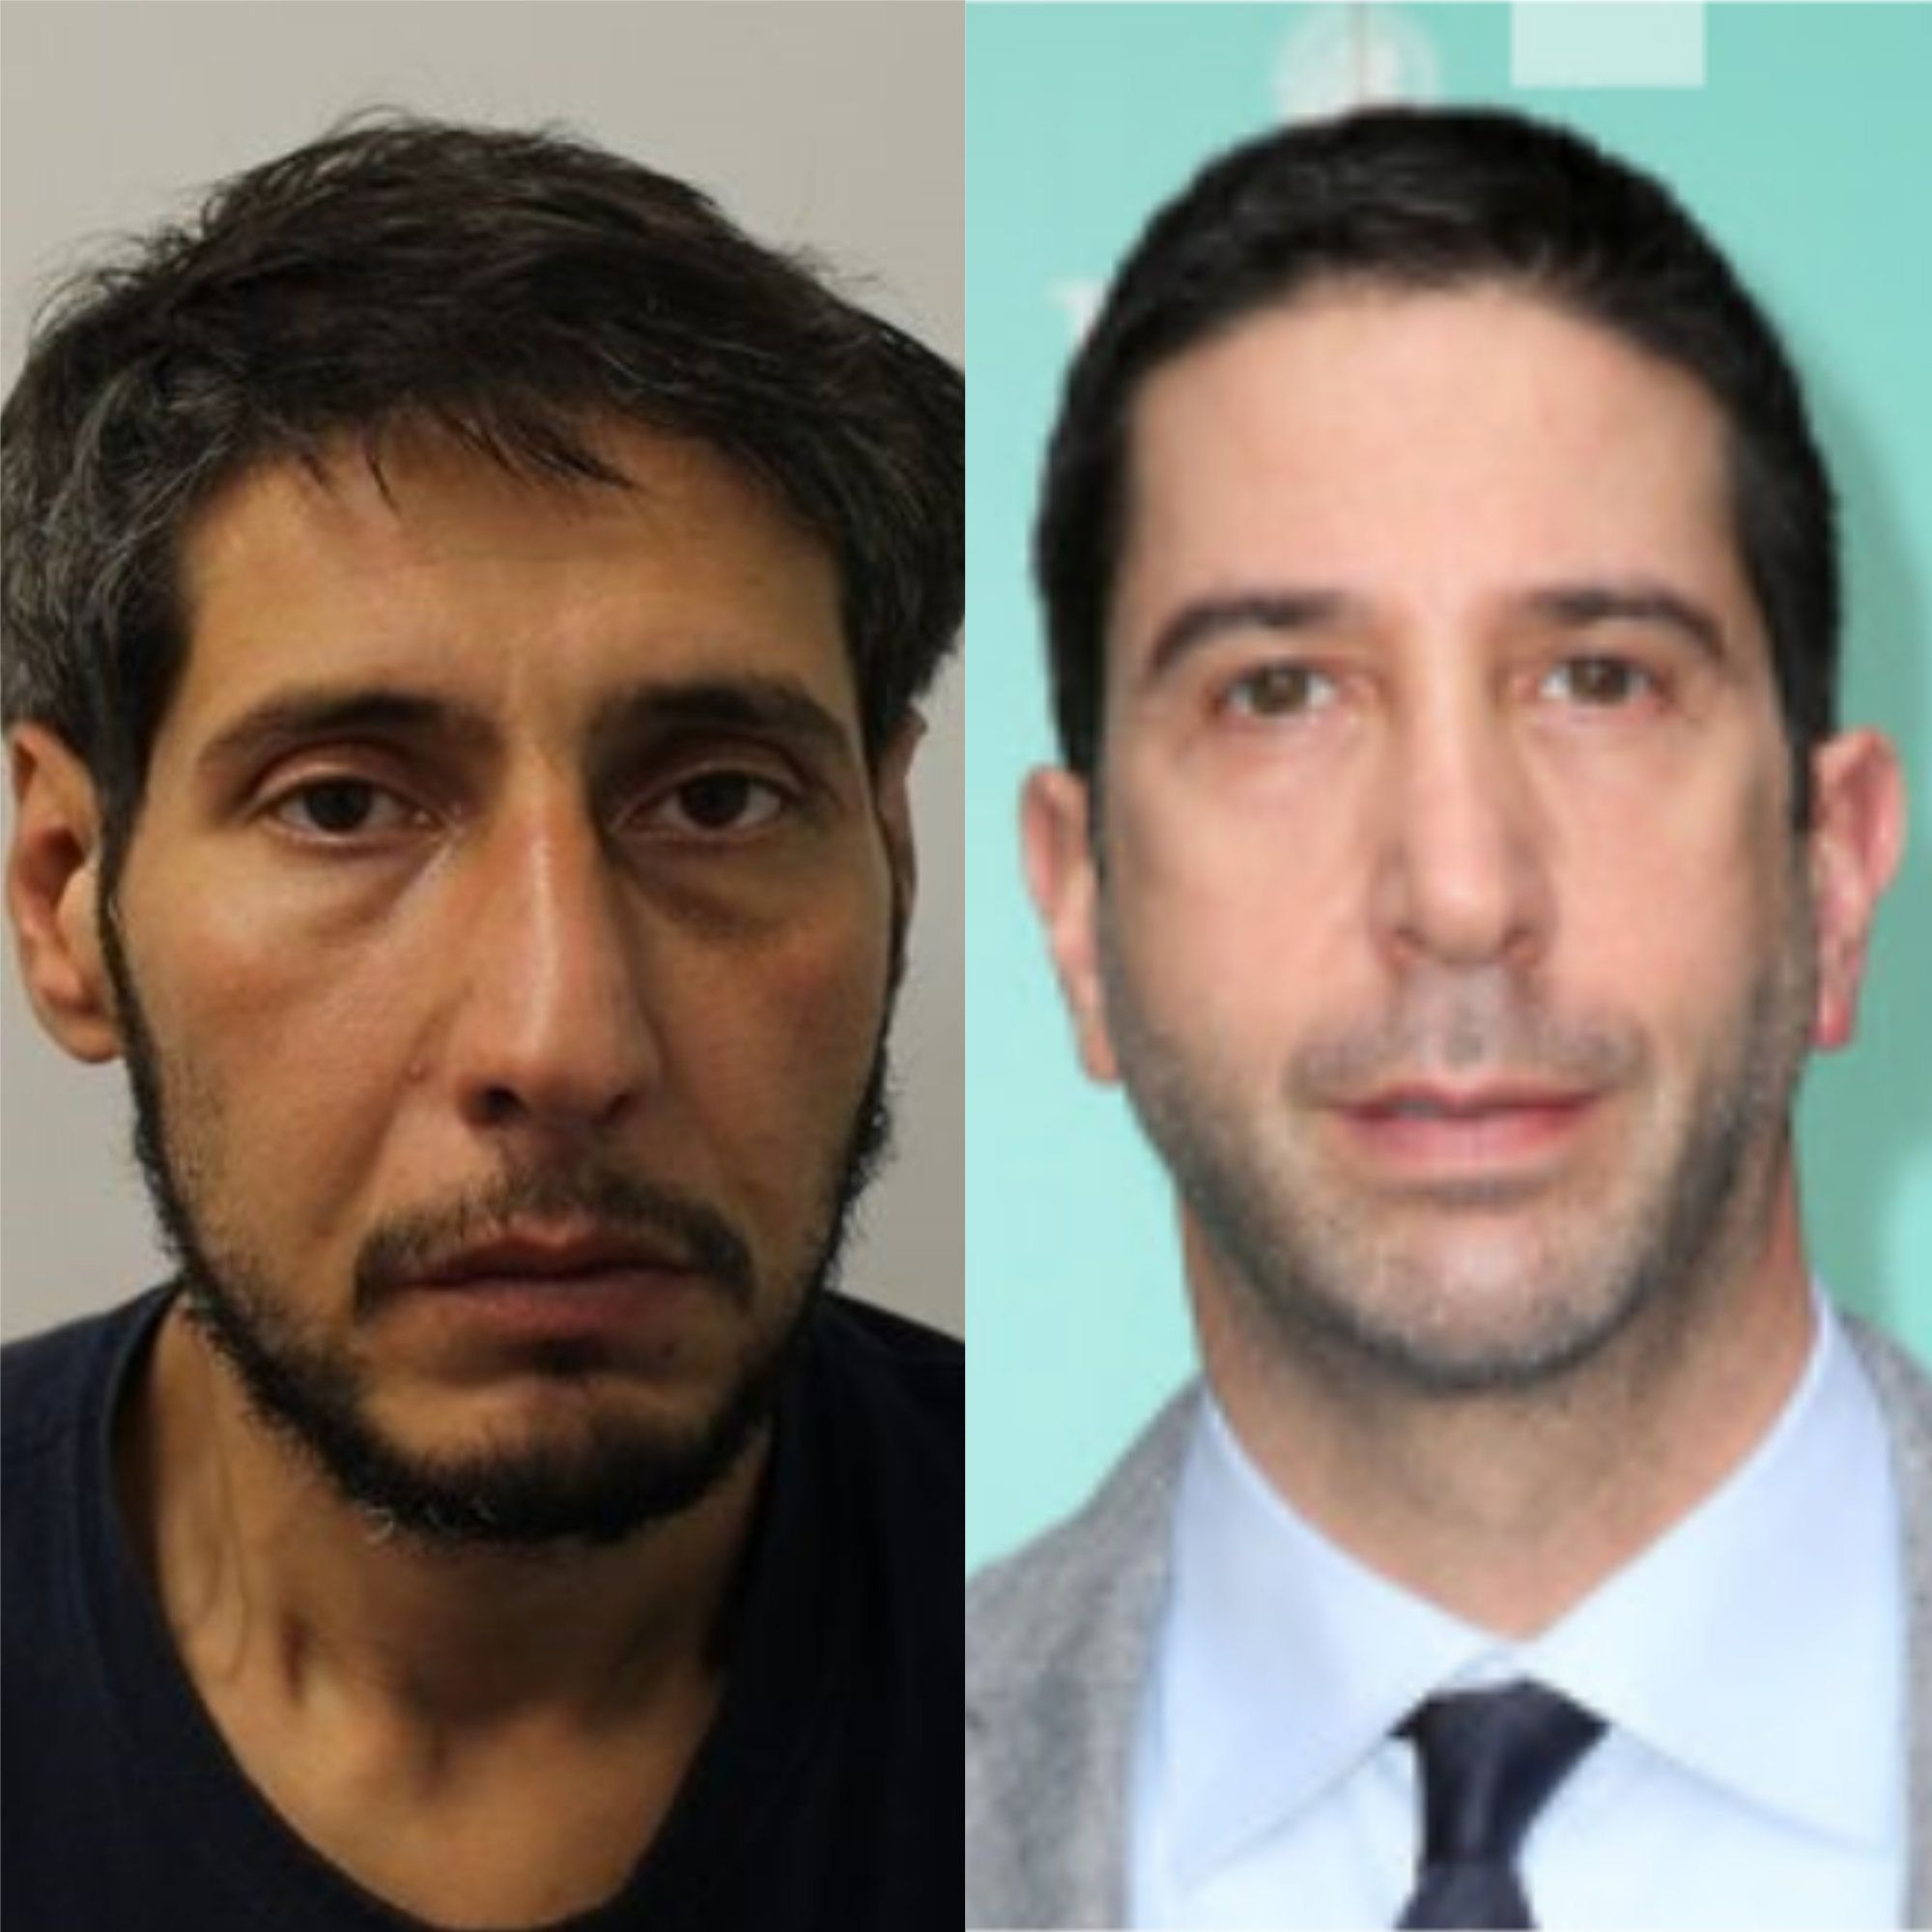 Police Release Mugshot After 'David Schwimmer Lookalike' Fails To Turn Up To